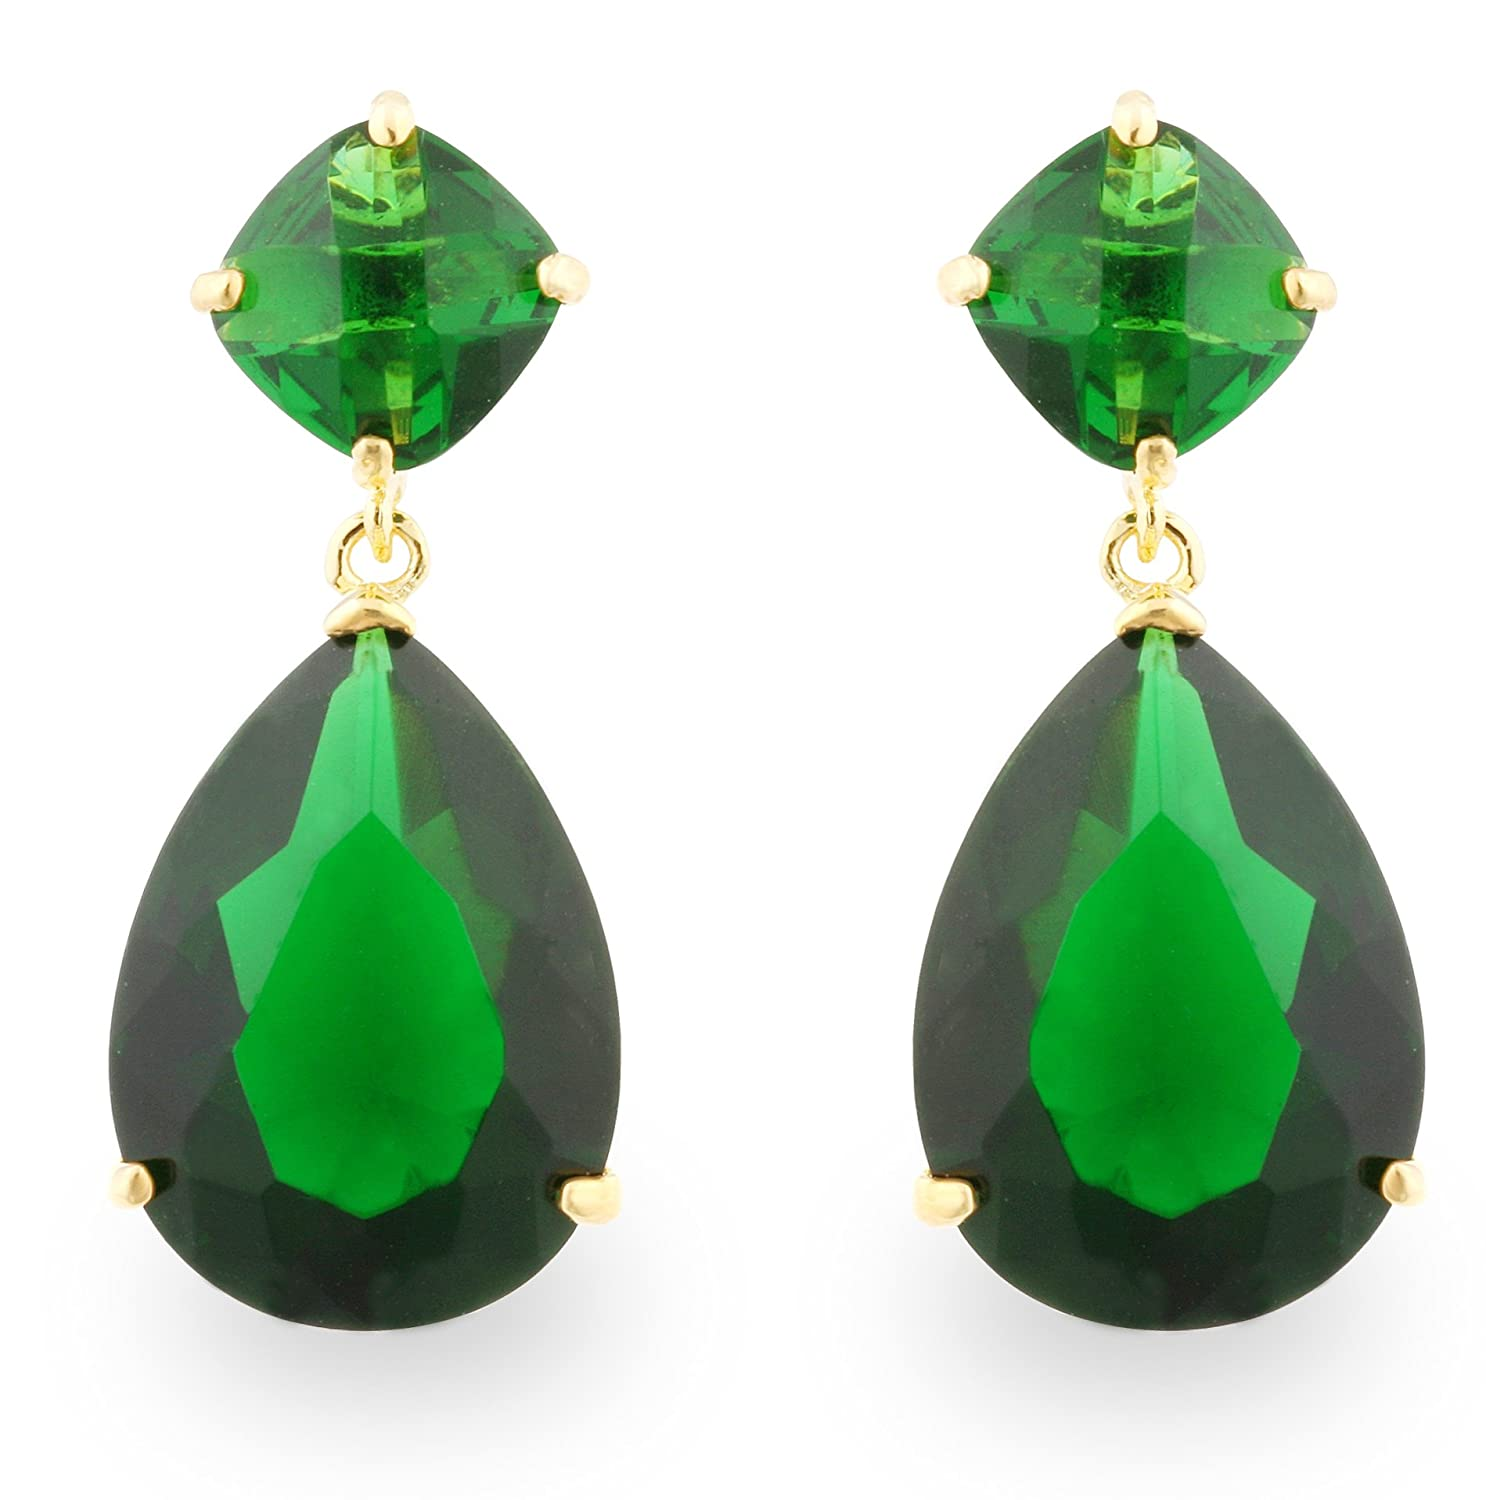 black item srgb with jewelry ciro product is envy drop the angelina make tie collection glamorous earrings them green